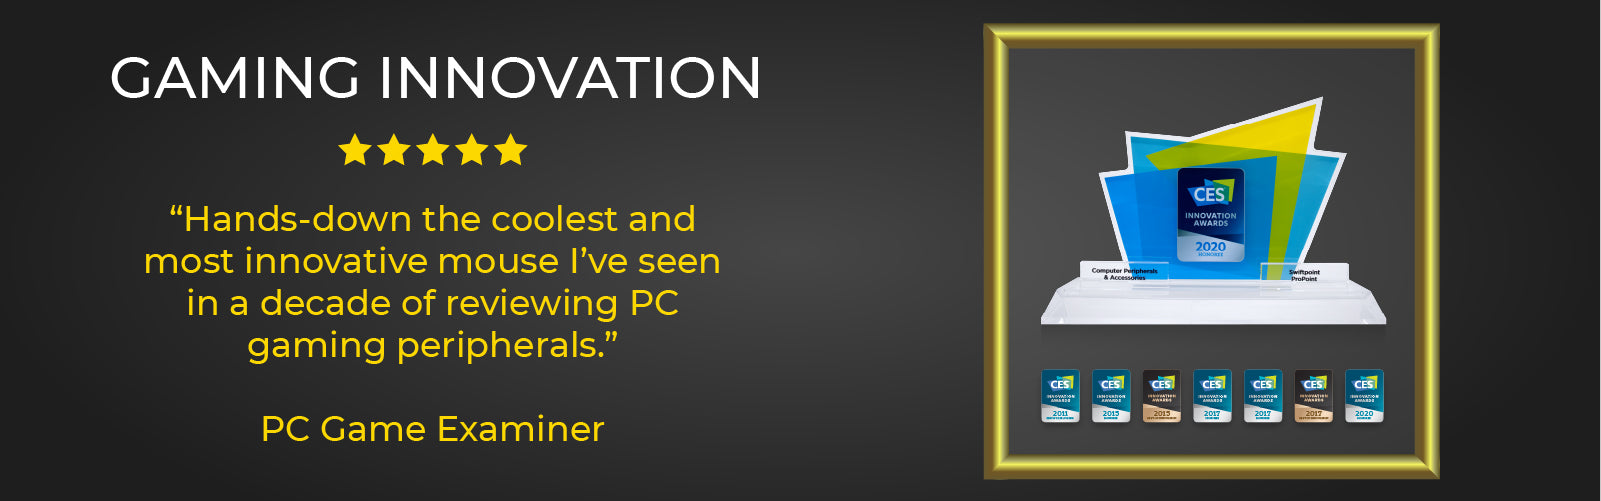 Most innovative gaming mice